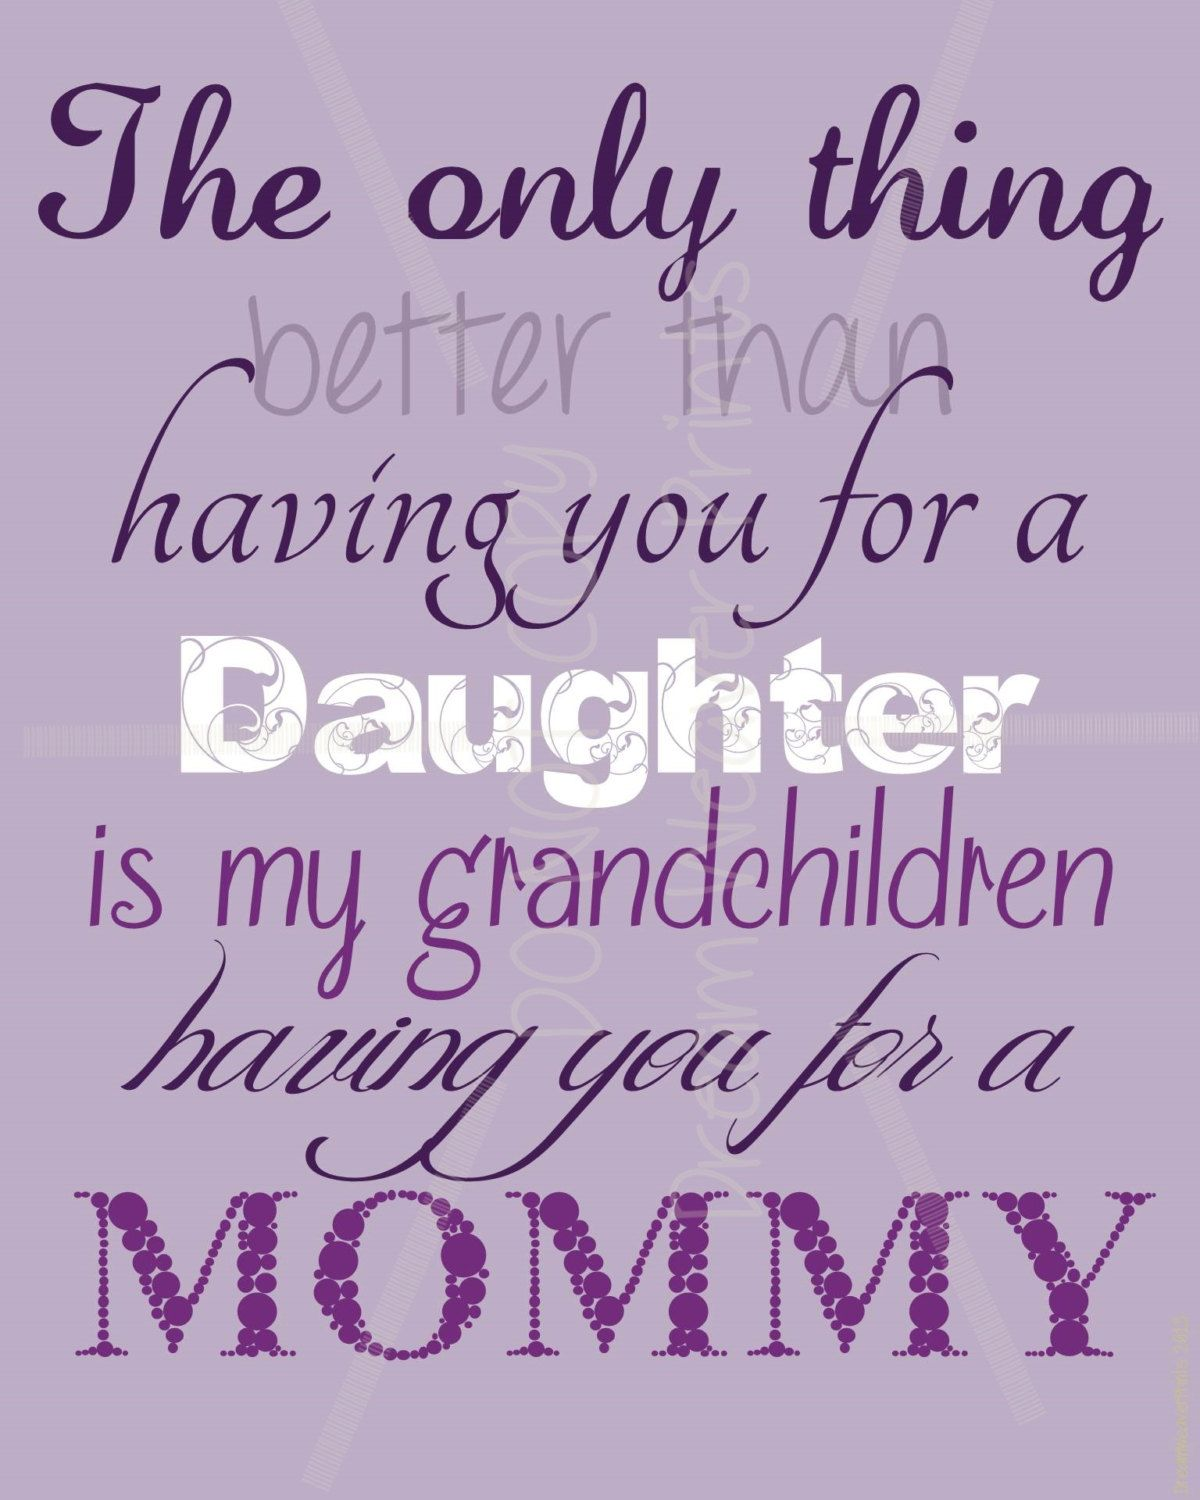 Happy Mothers Day Quotes From Step Daughter: WONDERFUL Tribute To Mothers And Daughters! Great Mother's